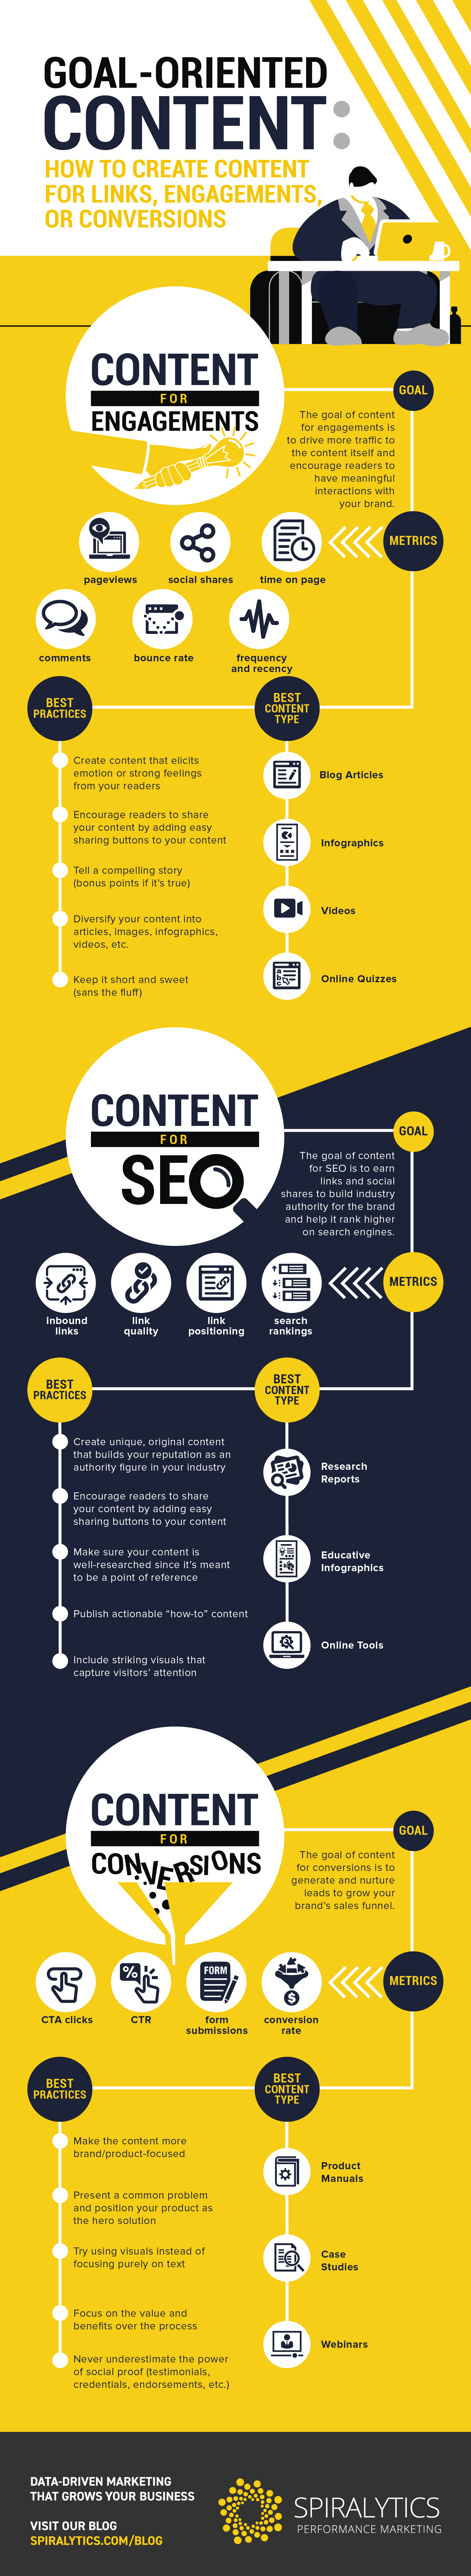 Goal-Oriented-Content-How-to-Create-Content-for-Links-Engagements-or-Conversions_rev1-02